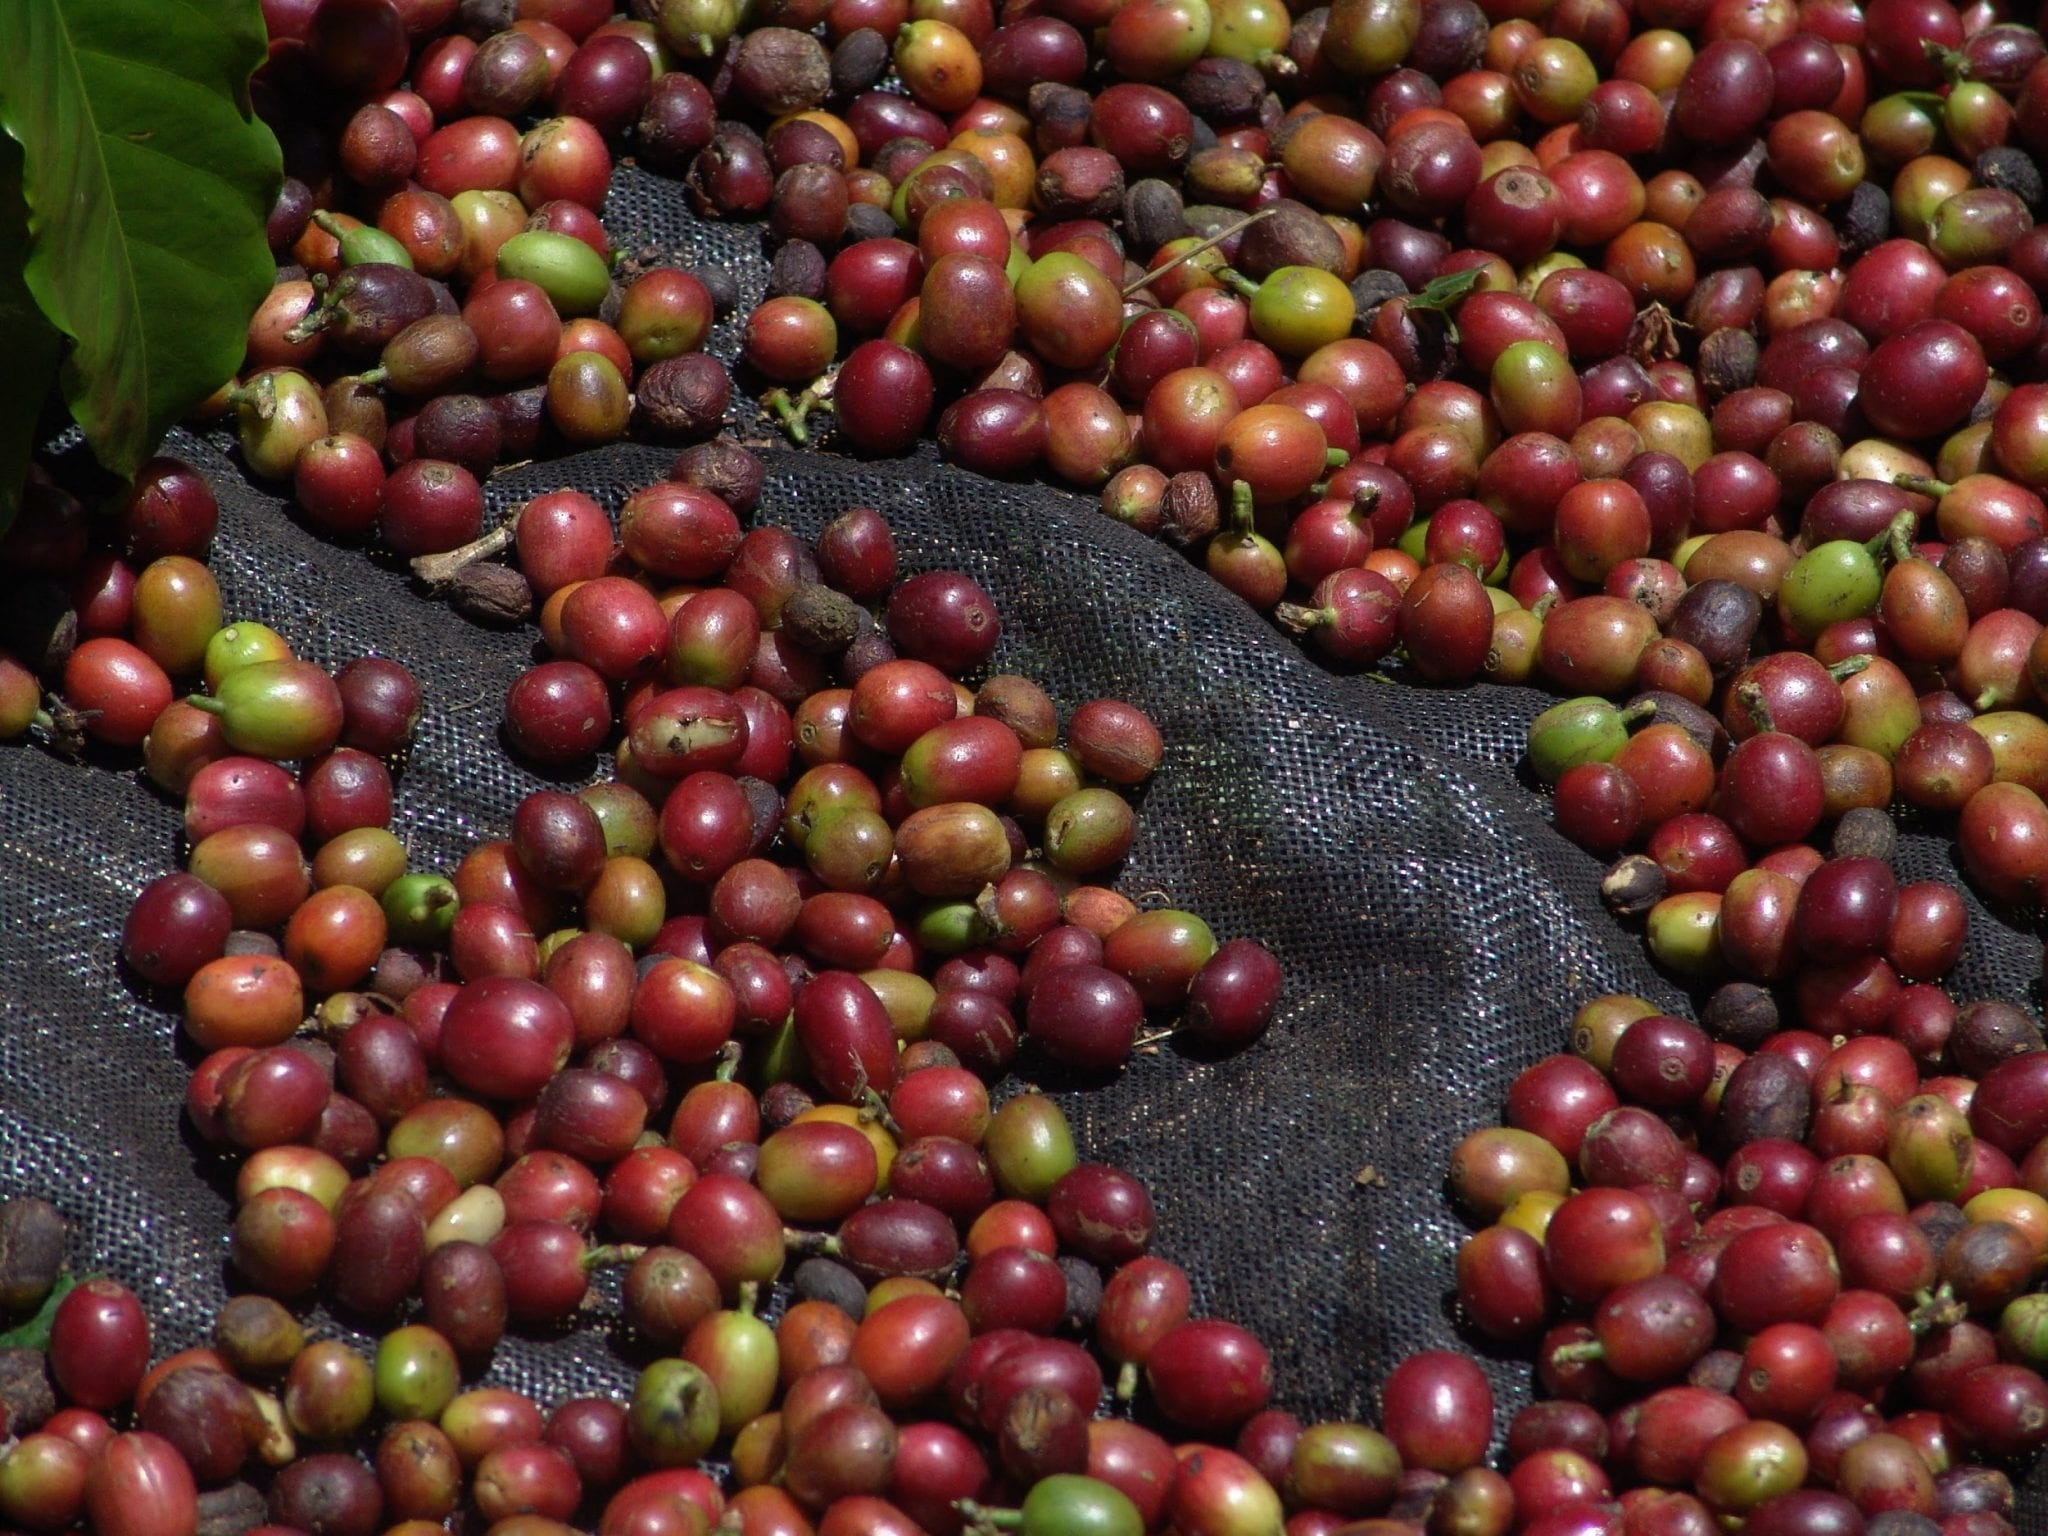 recently picked coffee ripe cherries